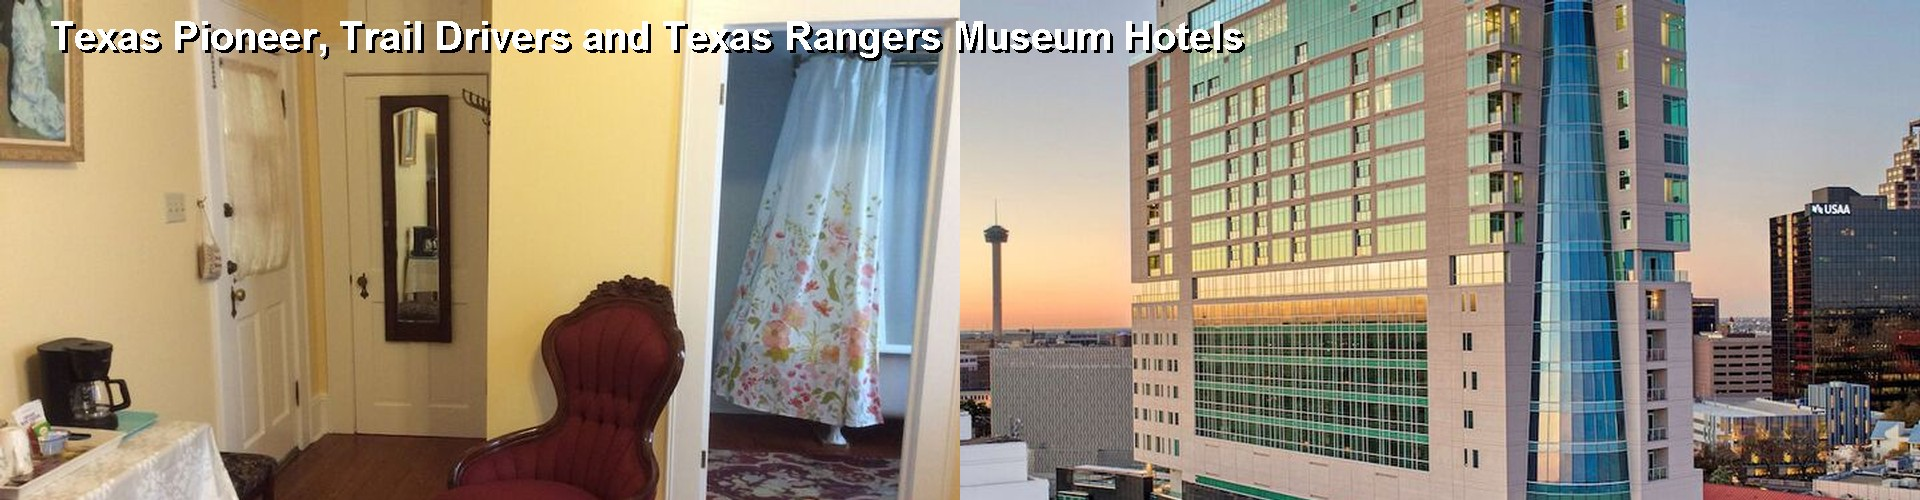 5 Best Hotels near Texas Pioneer, Trail Drivers and Texas Rangers Museum